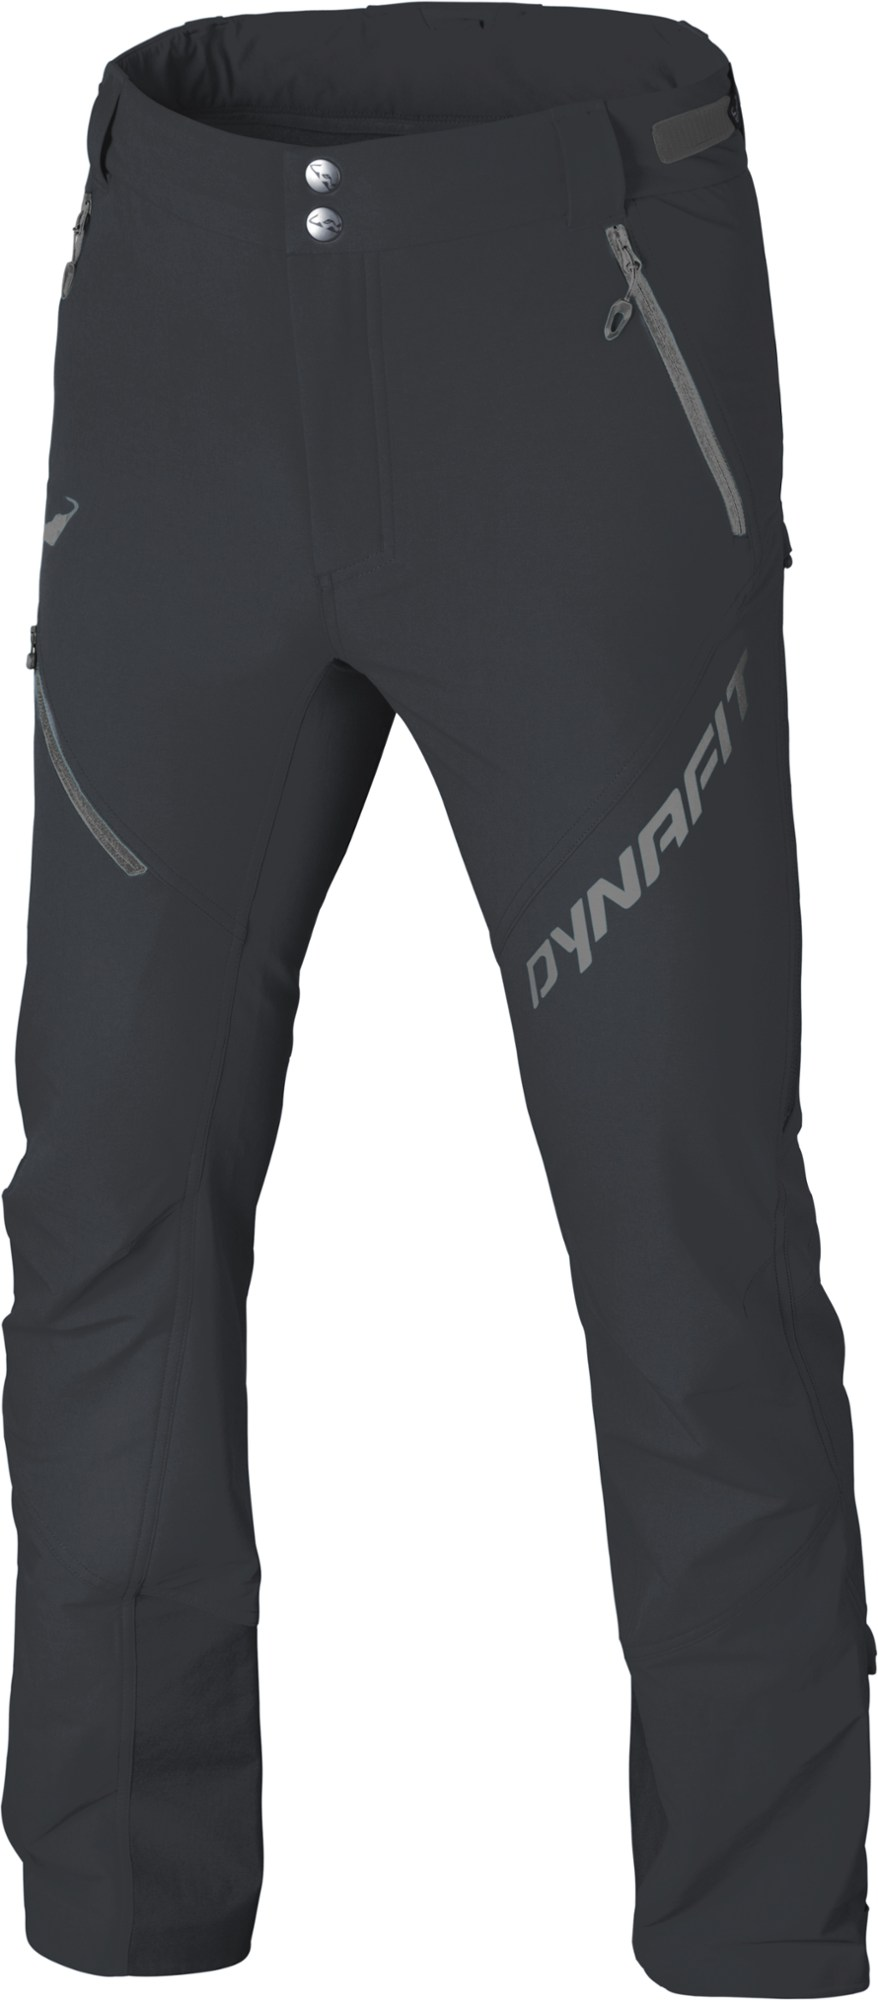 Dynafit Mercury Soft-Shell Pants - Men's